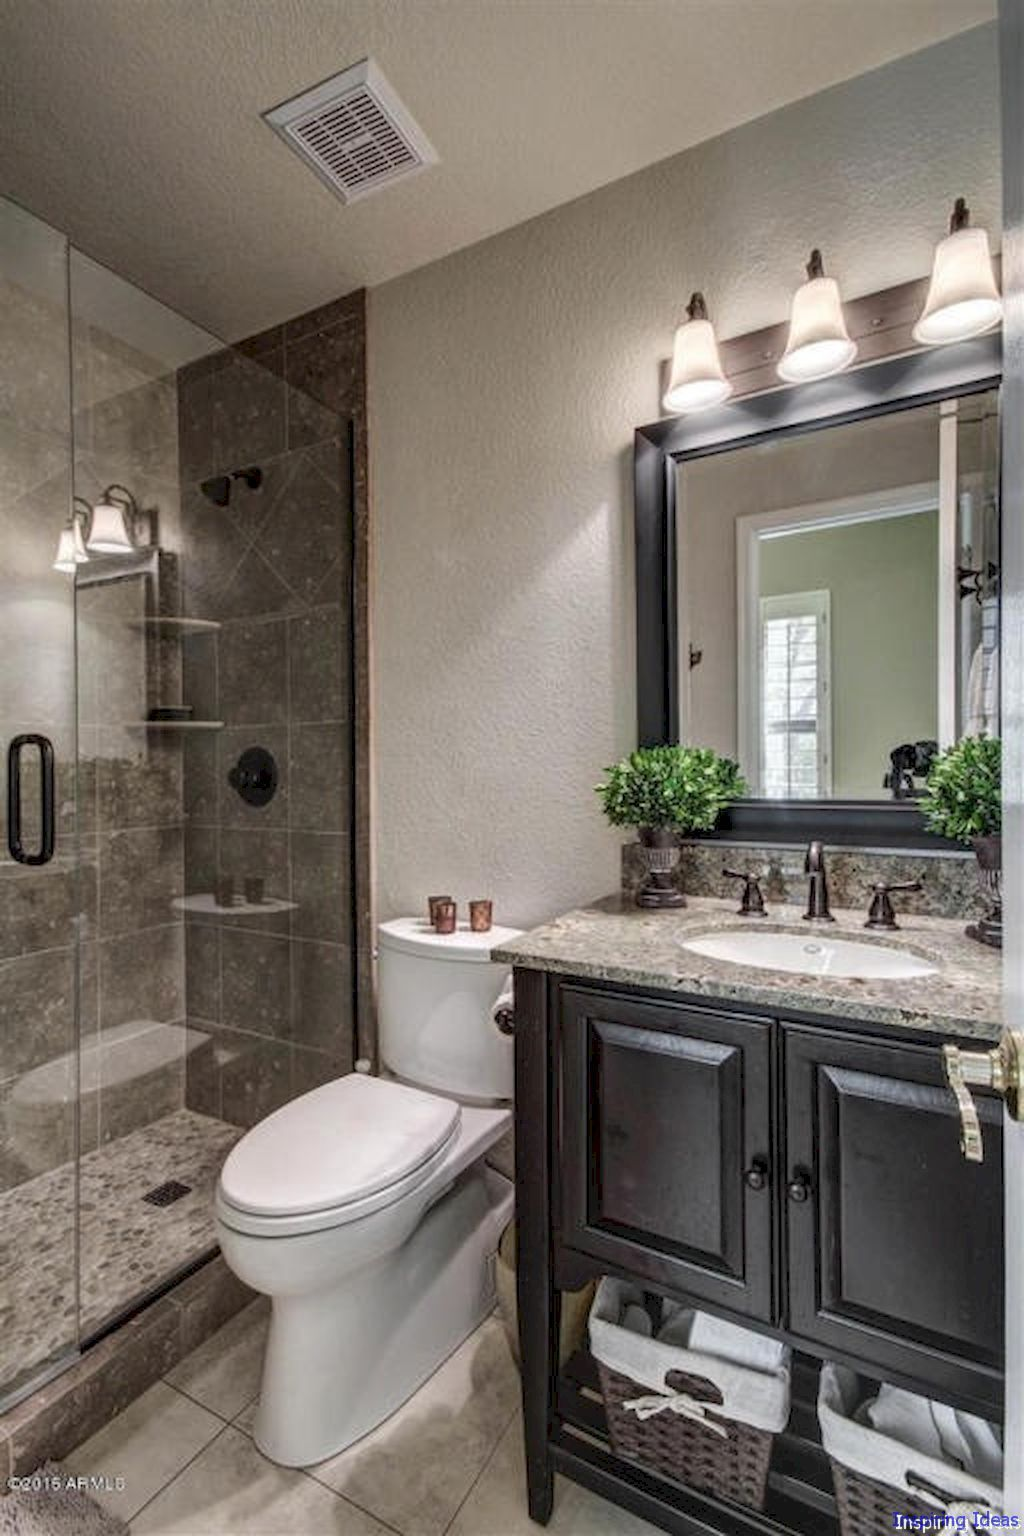 15 Clever Small Bathroom Design Ideas  Small Bathroom Designs Amazing Clever Small Bathroom Designs Decorating Inspiration